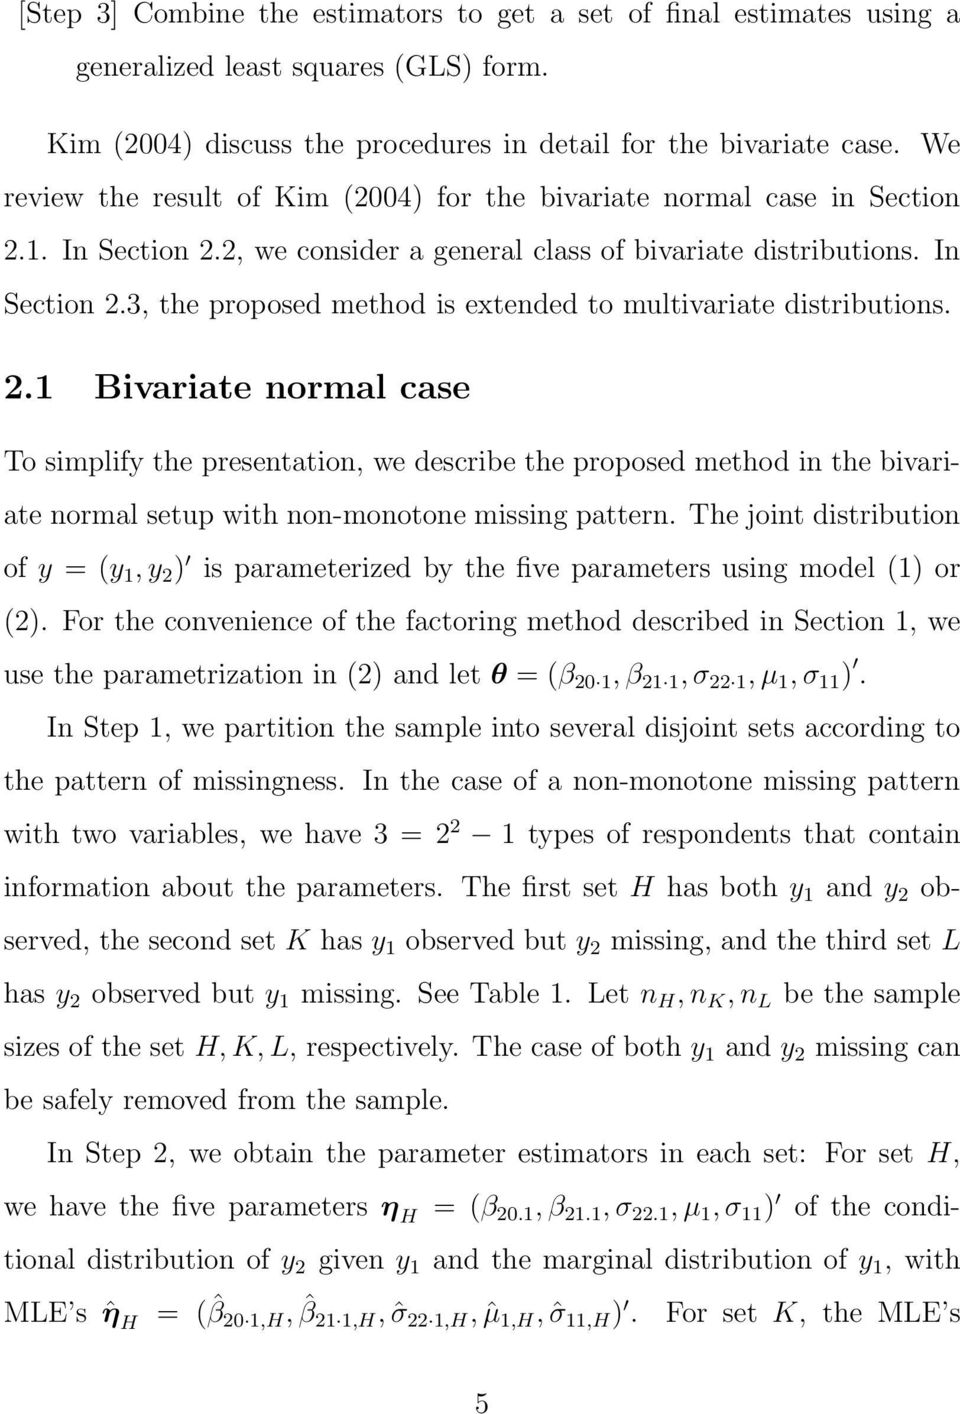 2.1 Bivariate normal case To simplify the presentation, we describe the proposed method in the bivariate normal setup with non-monotone missing pattern.